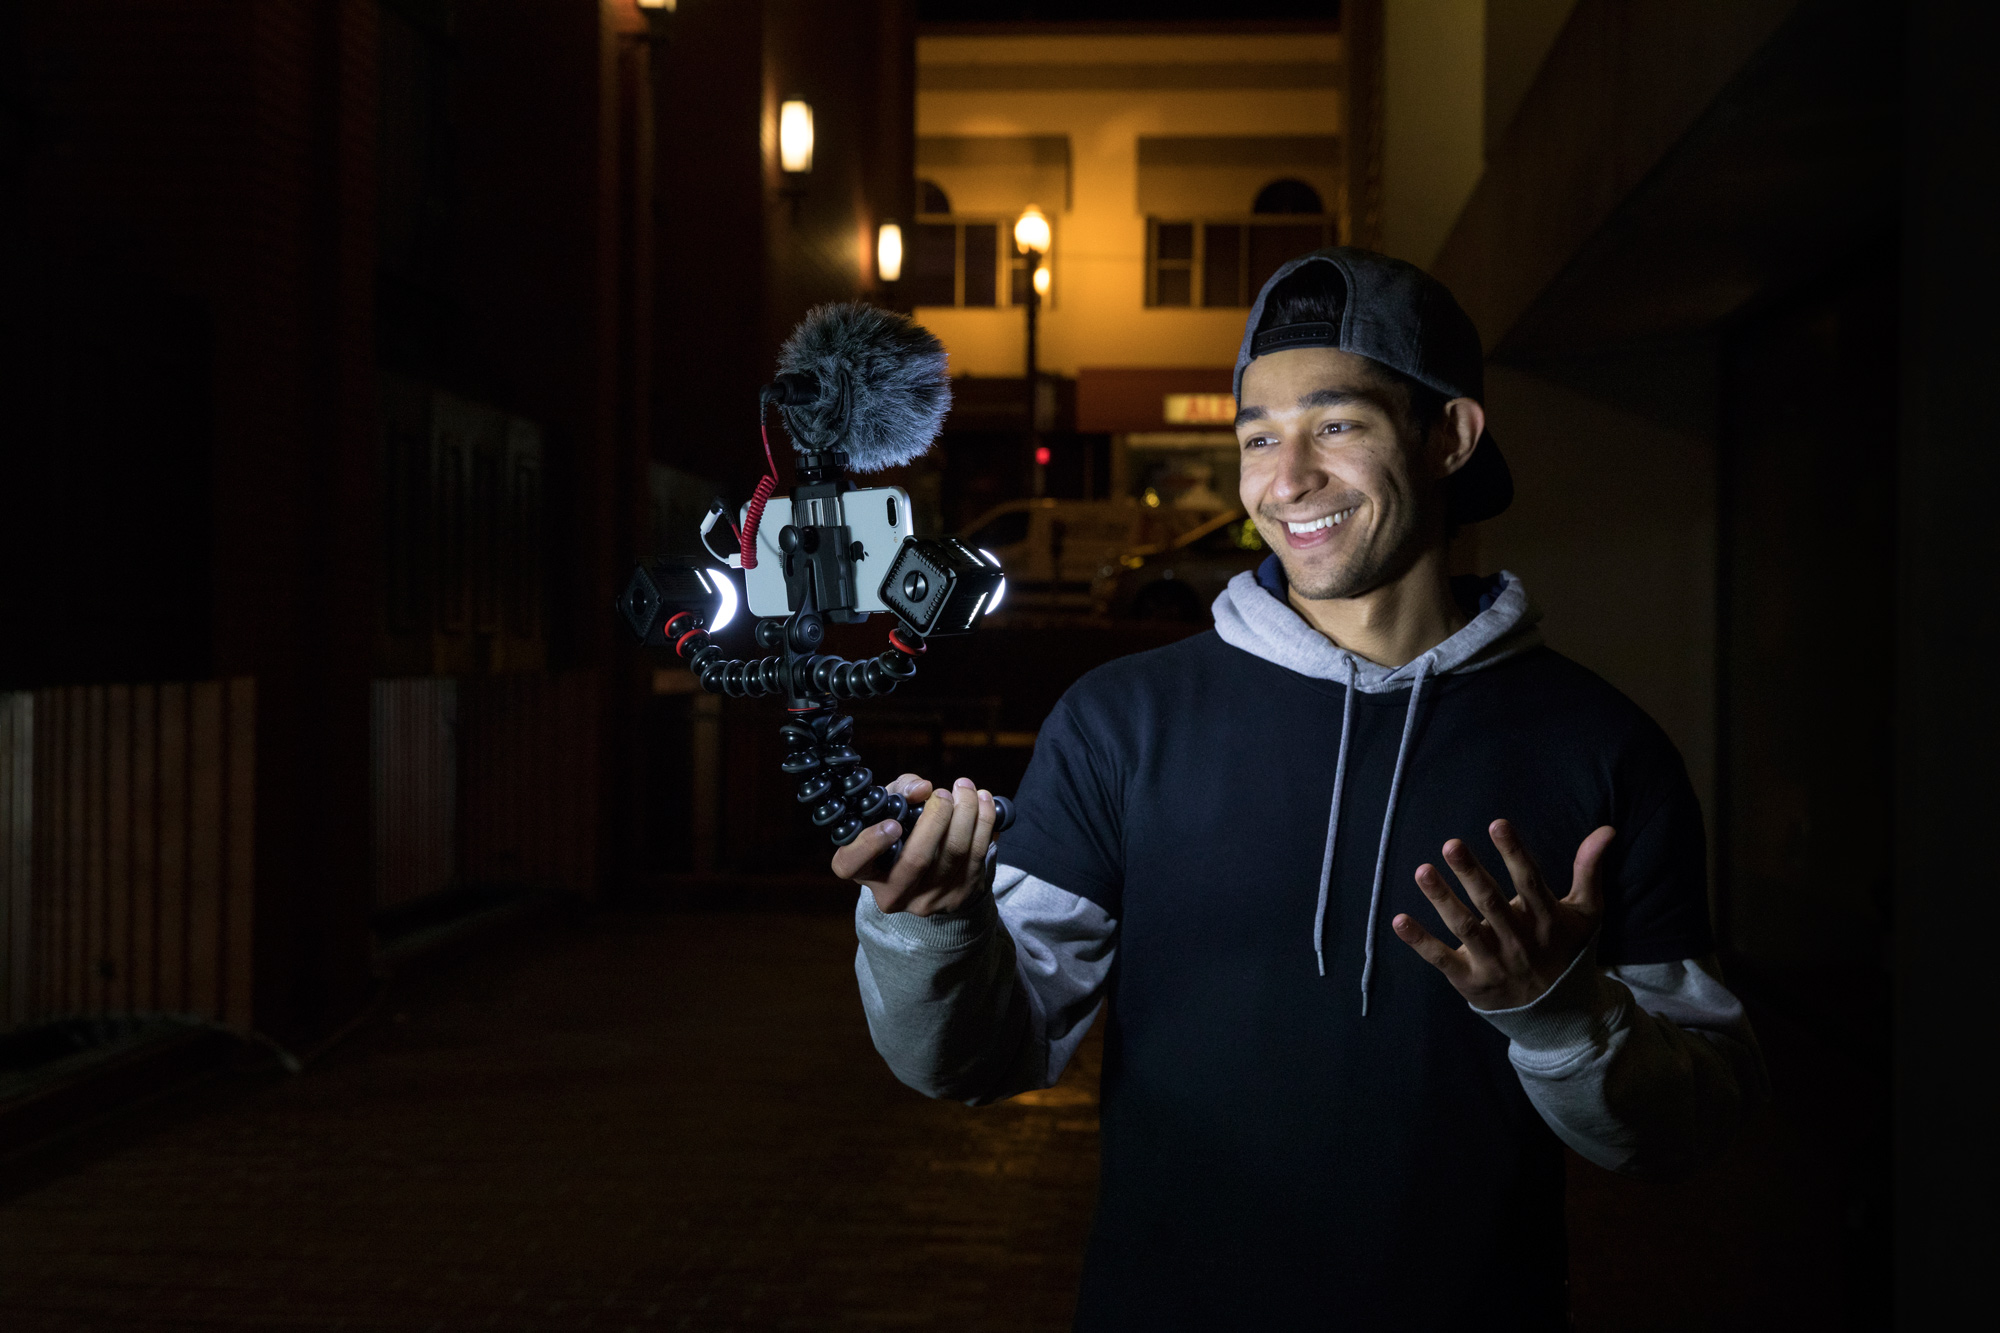 #JOBYAmbassadors Wil Dasovich Wins Vlogger of the Year